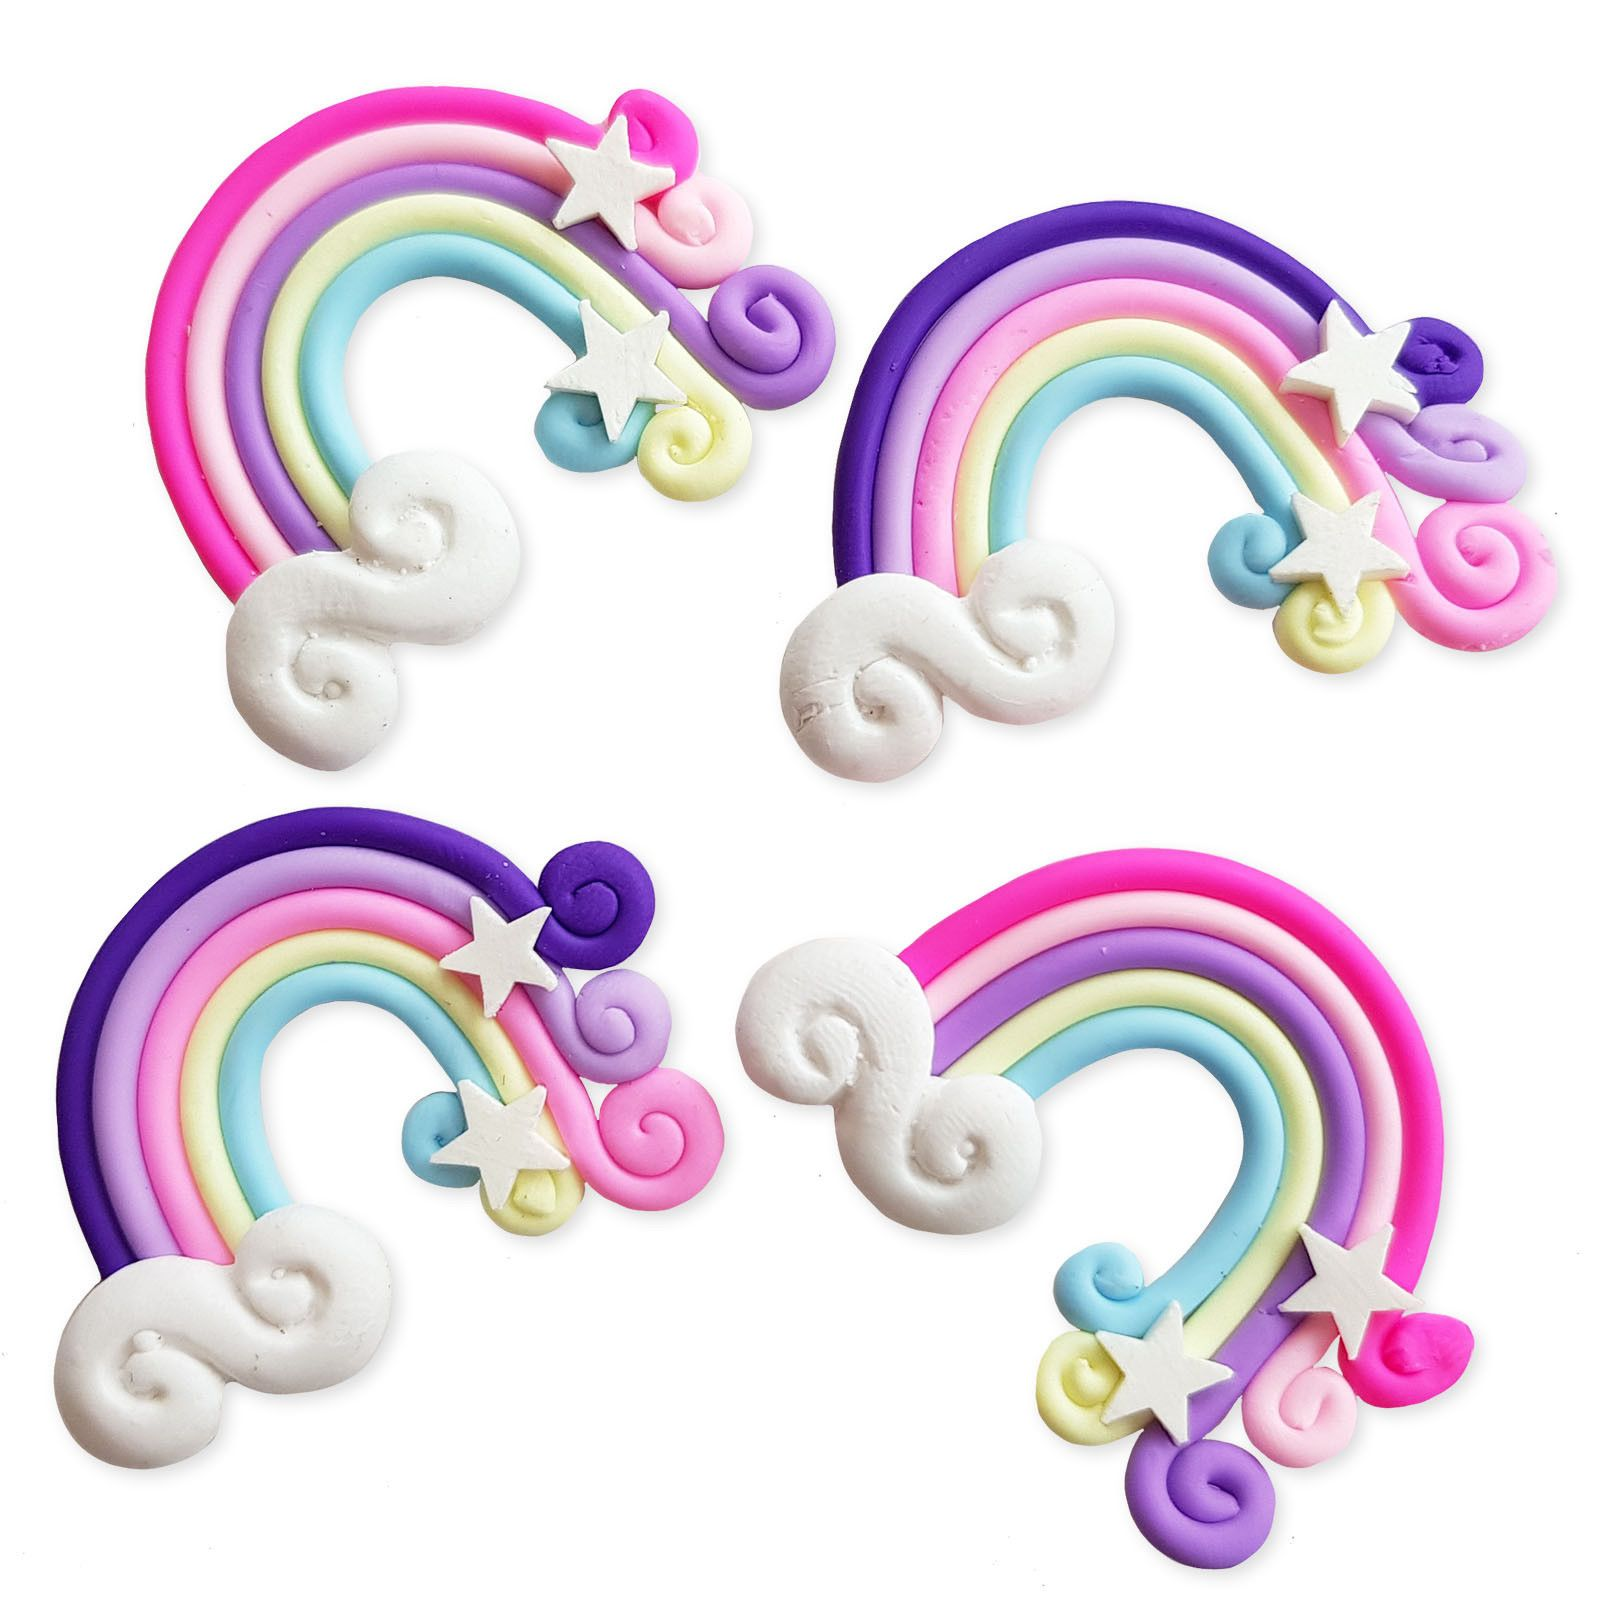 4pcs Cute Horse Resin Kawaii Flatback Cabochons Embellishment Decoden Craft